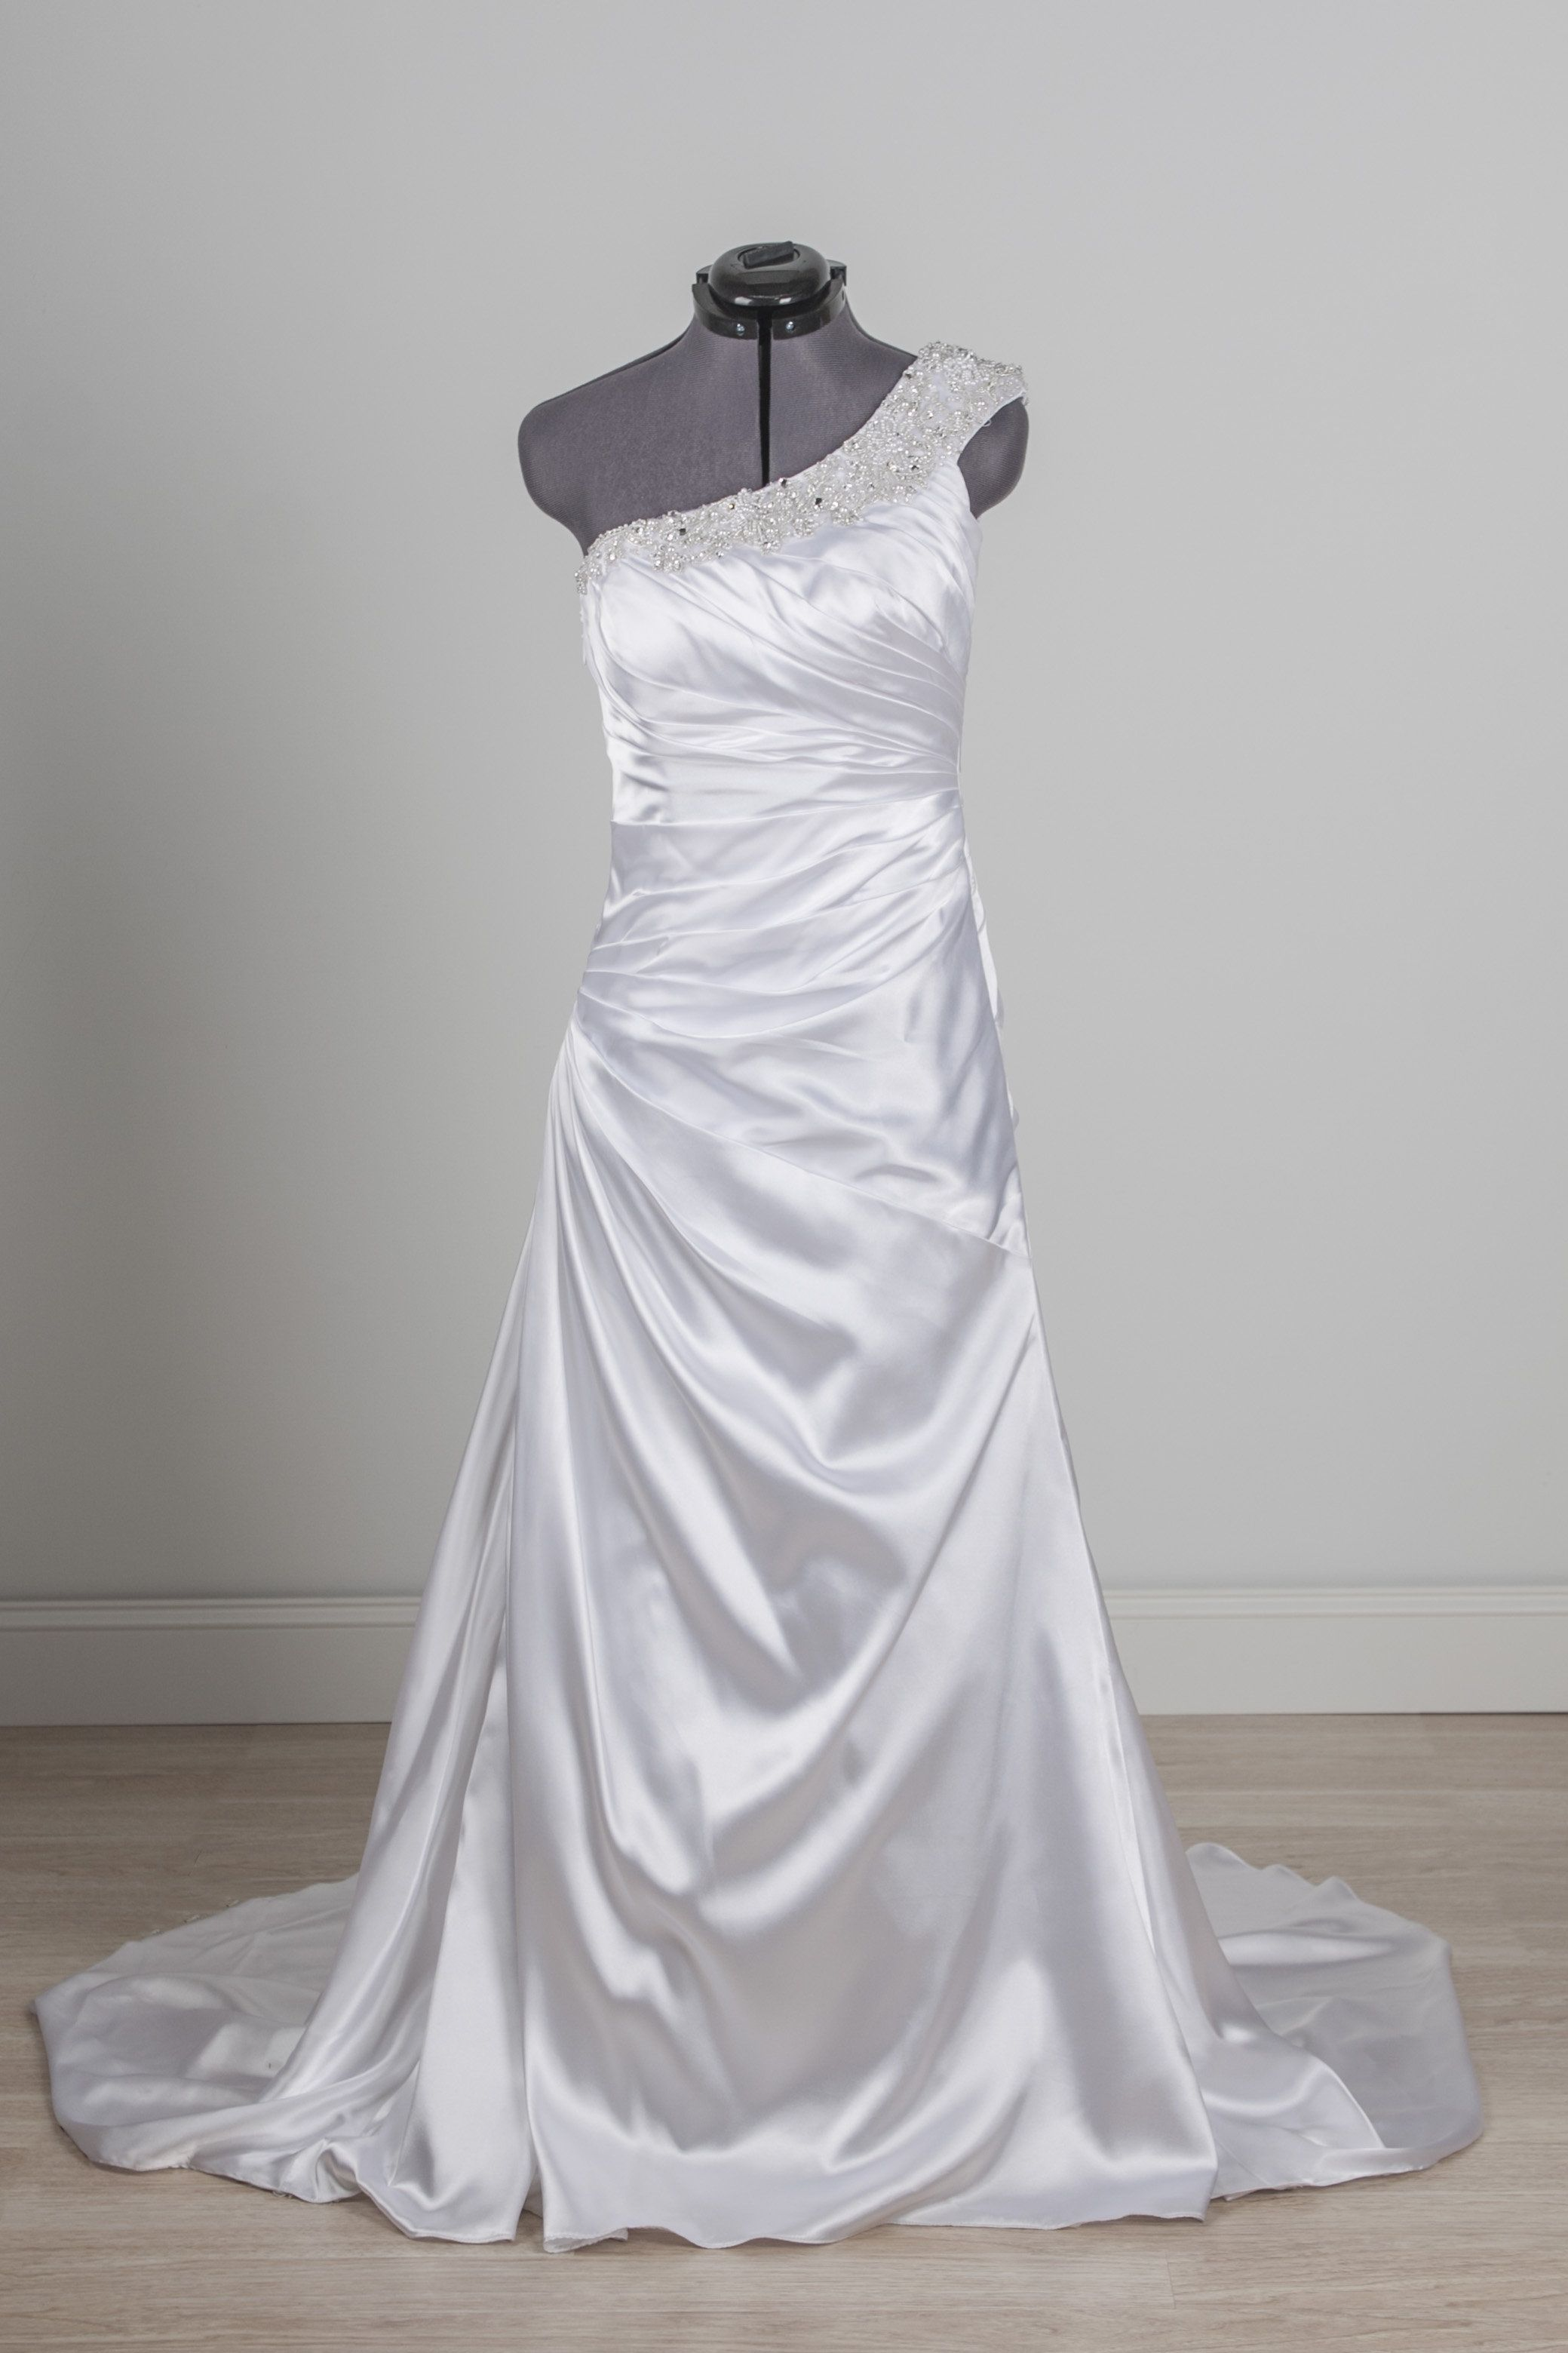 Galina Signature - SWG494 - one shoulder wedding dress rental on Borrowing Magnolia.  Save money on designer wedding dresses online.  Buy or rent wedding dresses online.